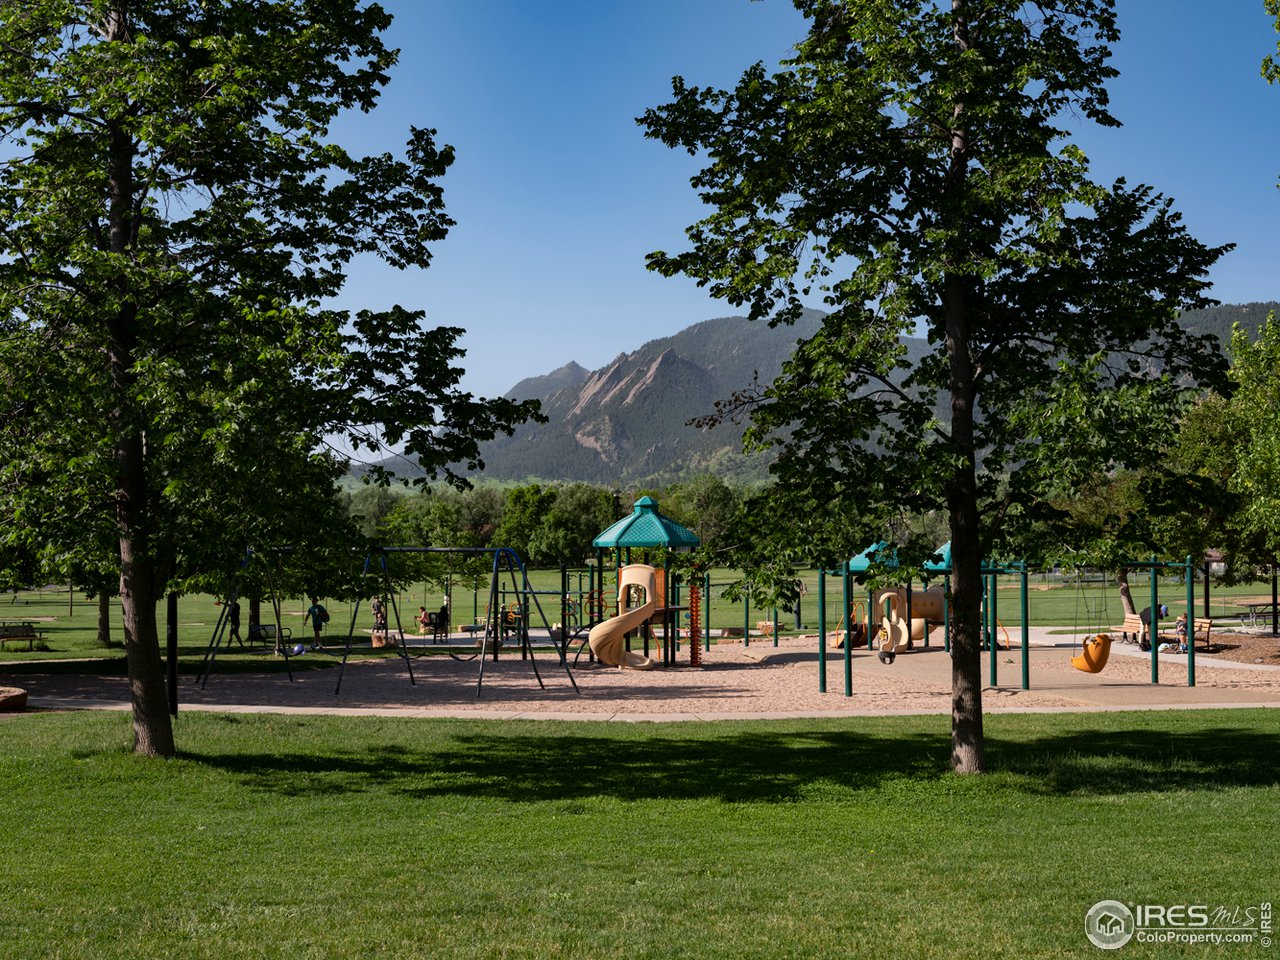 North Boulder park literally 5 houses away